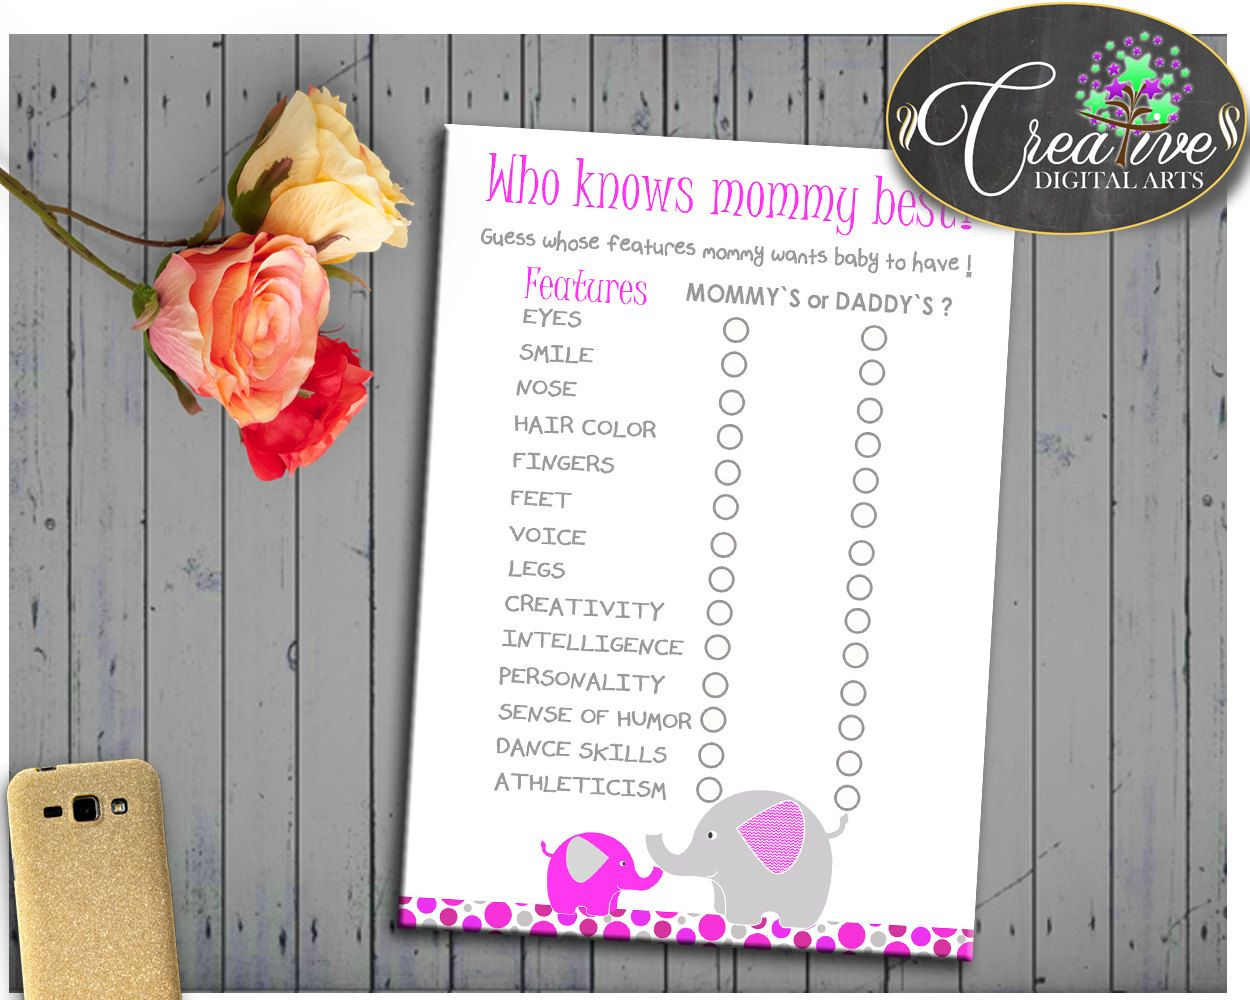 Elephant Trunk Shower Pink Elephant Baby Smile How Well Do You Know WHO KNOWS MOMMY Best, Party Decorations, Party Theme - ep001 #babyshowerparty #babyshowerinvites